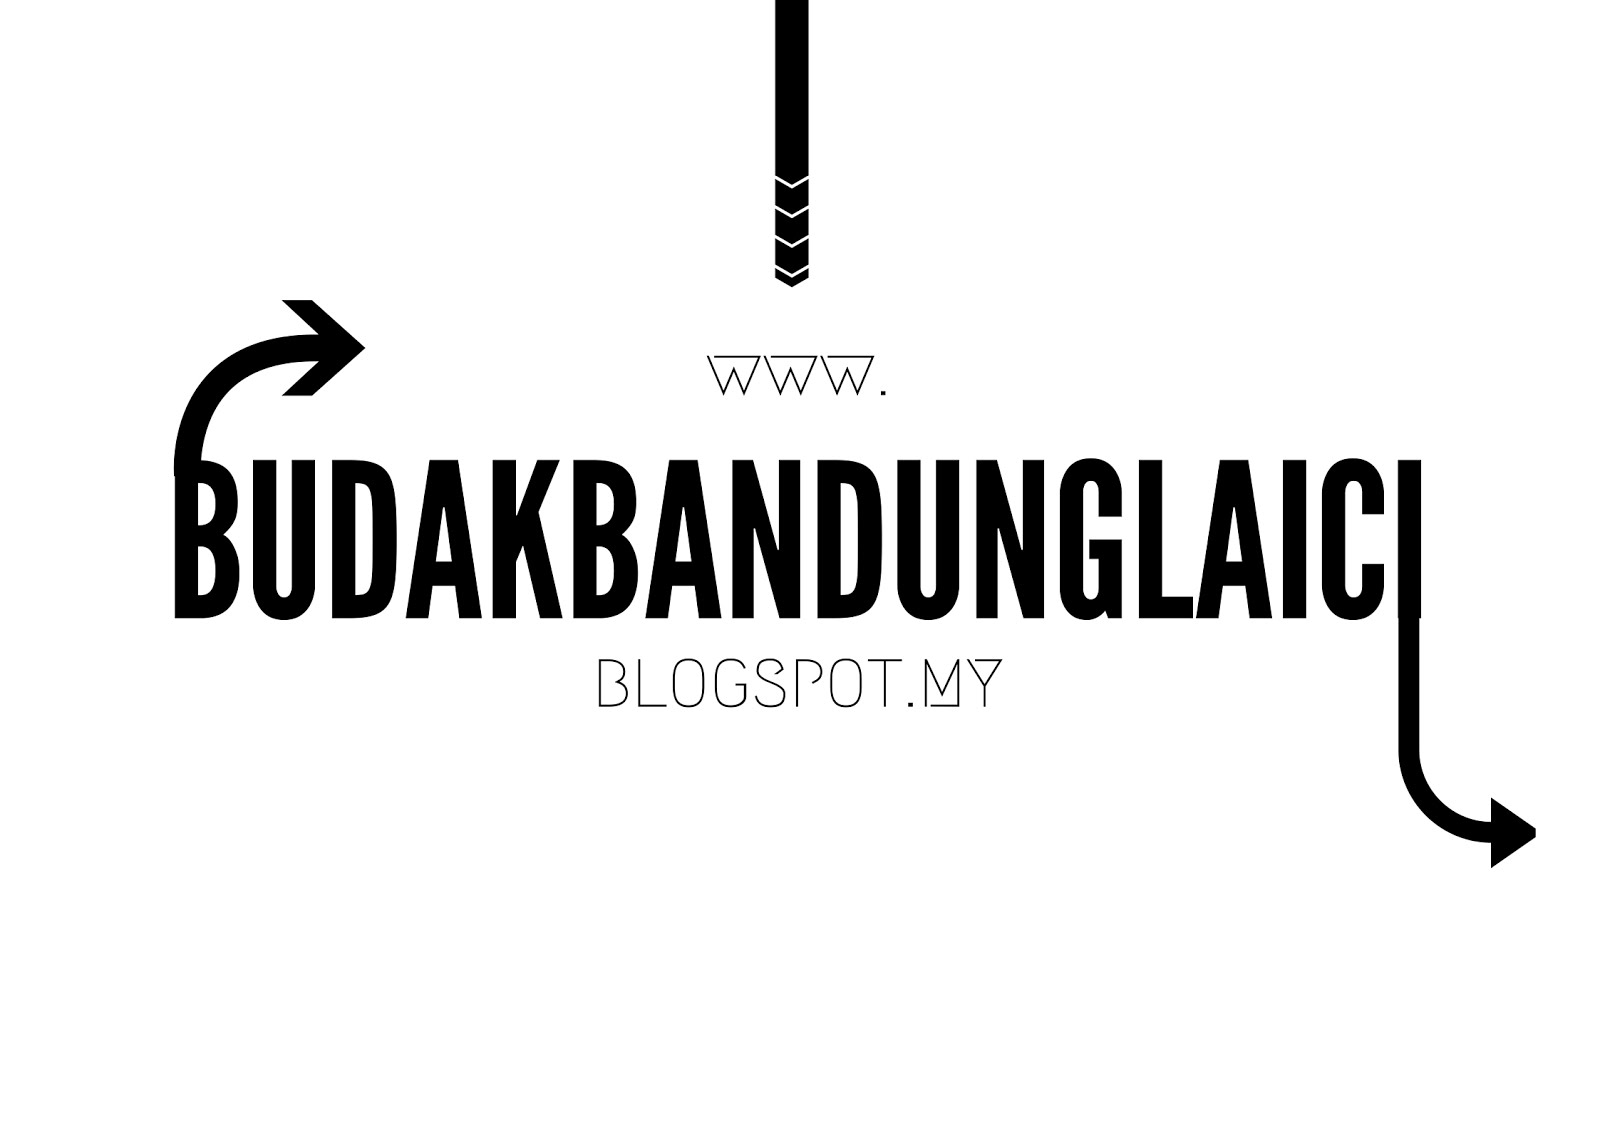 Follow Blog Utama BBL